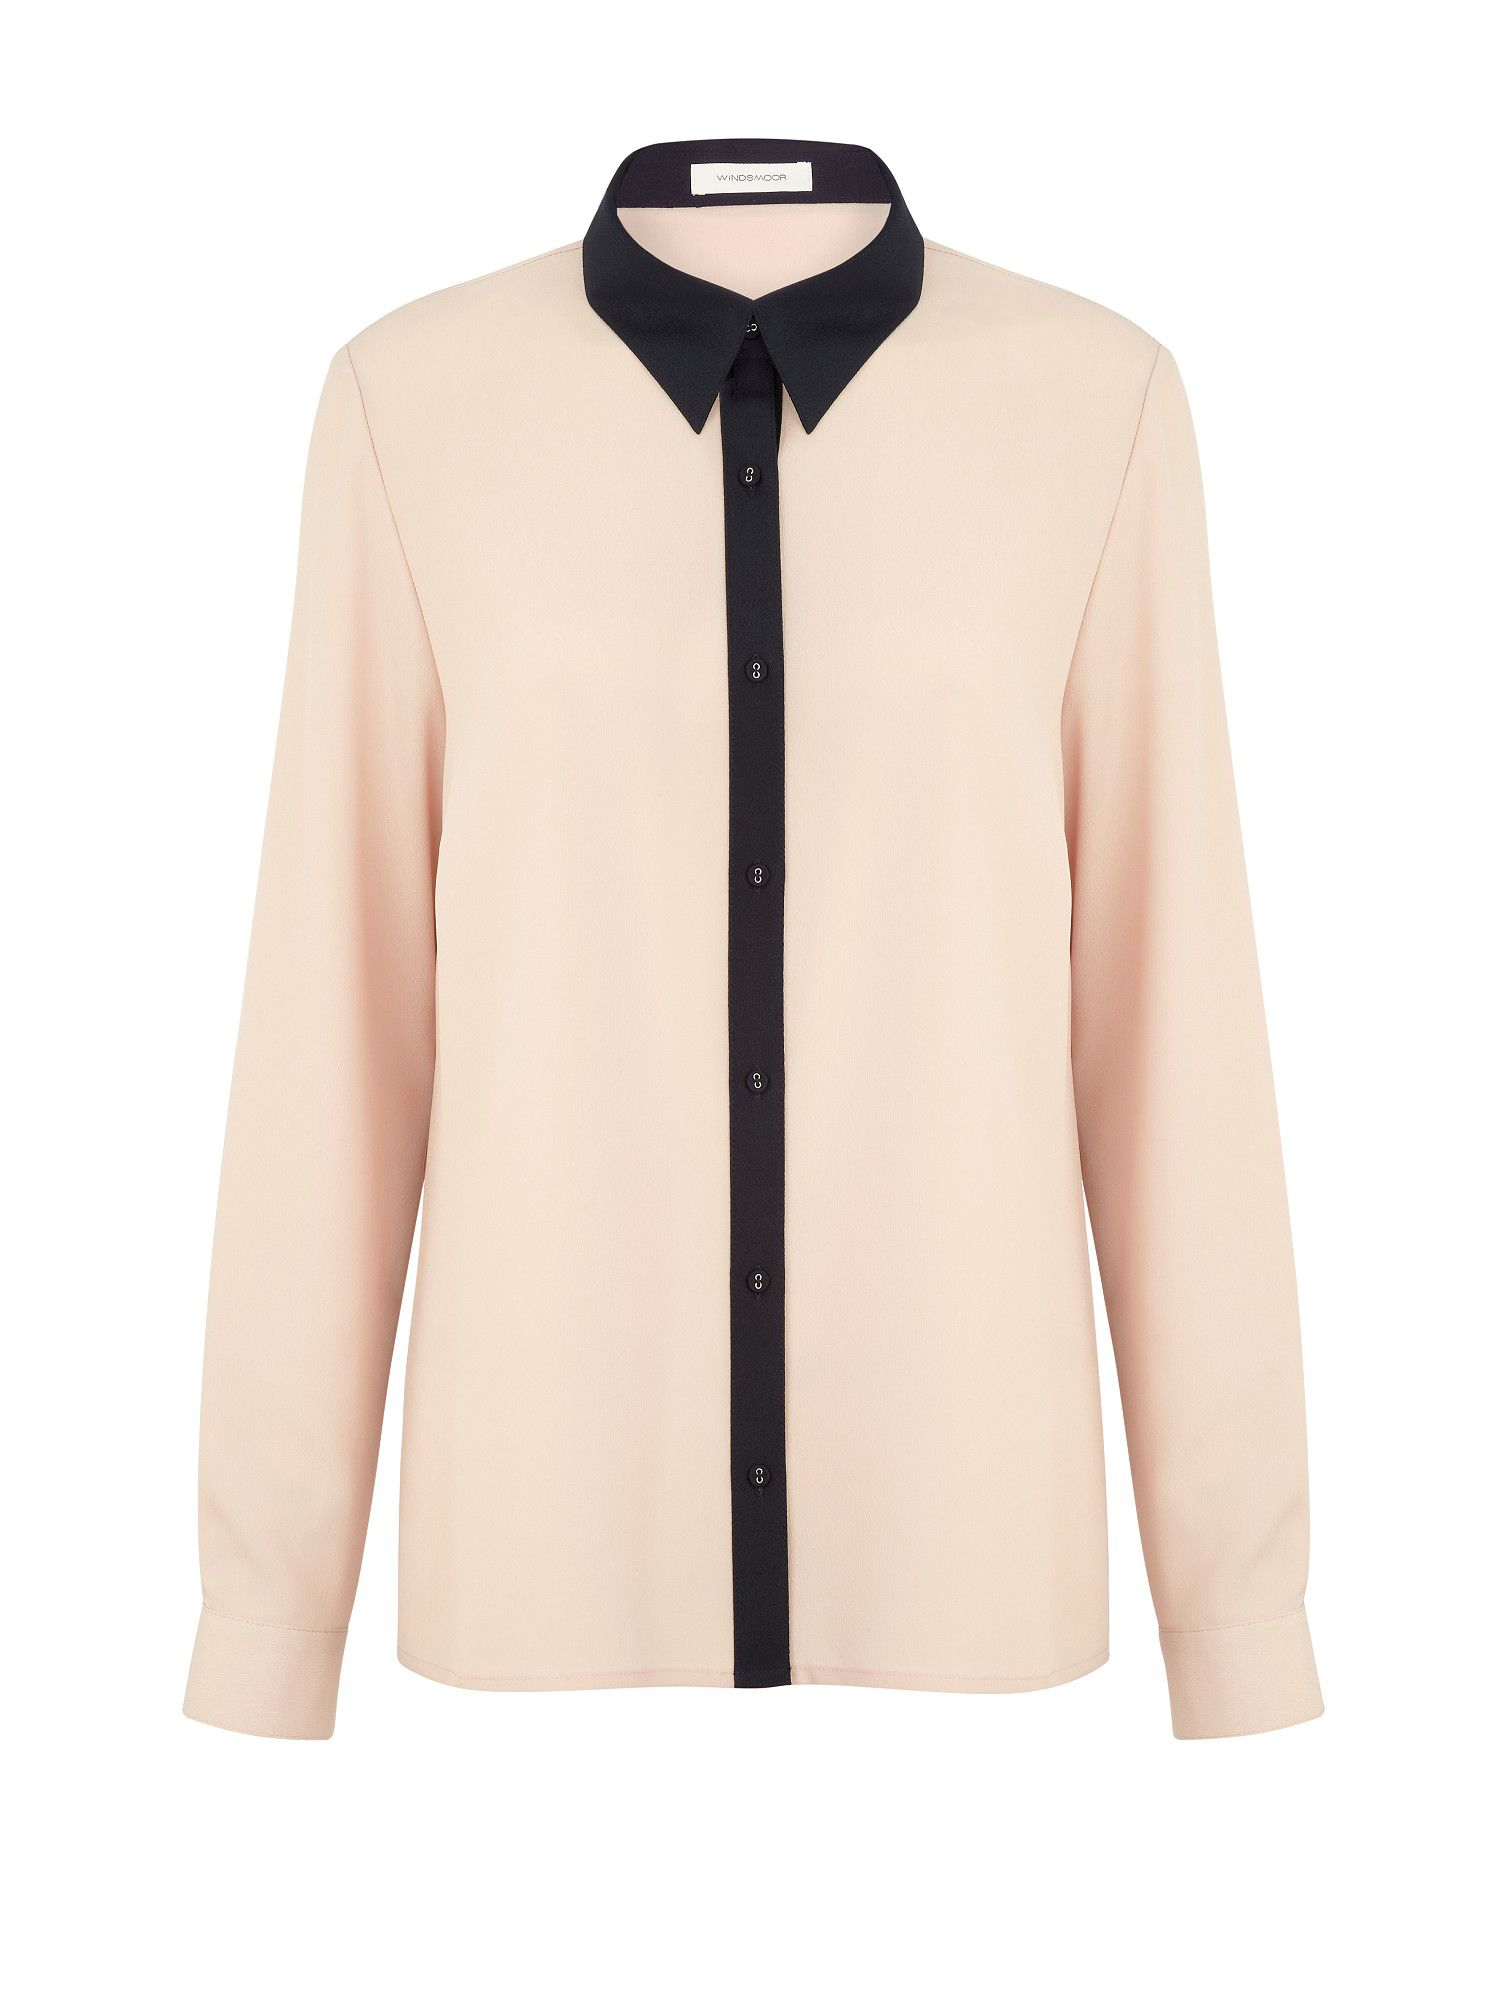 Blush Contrast Blouse